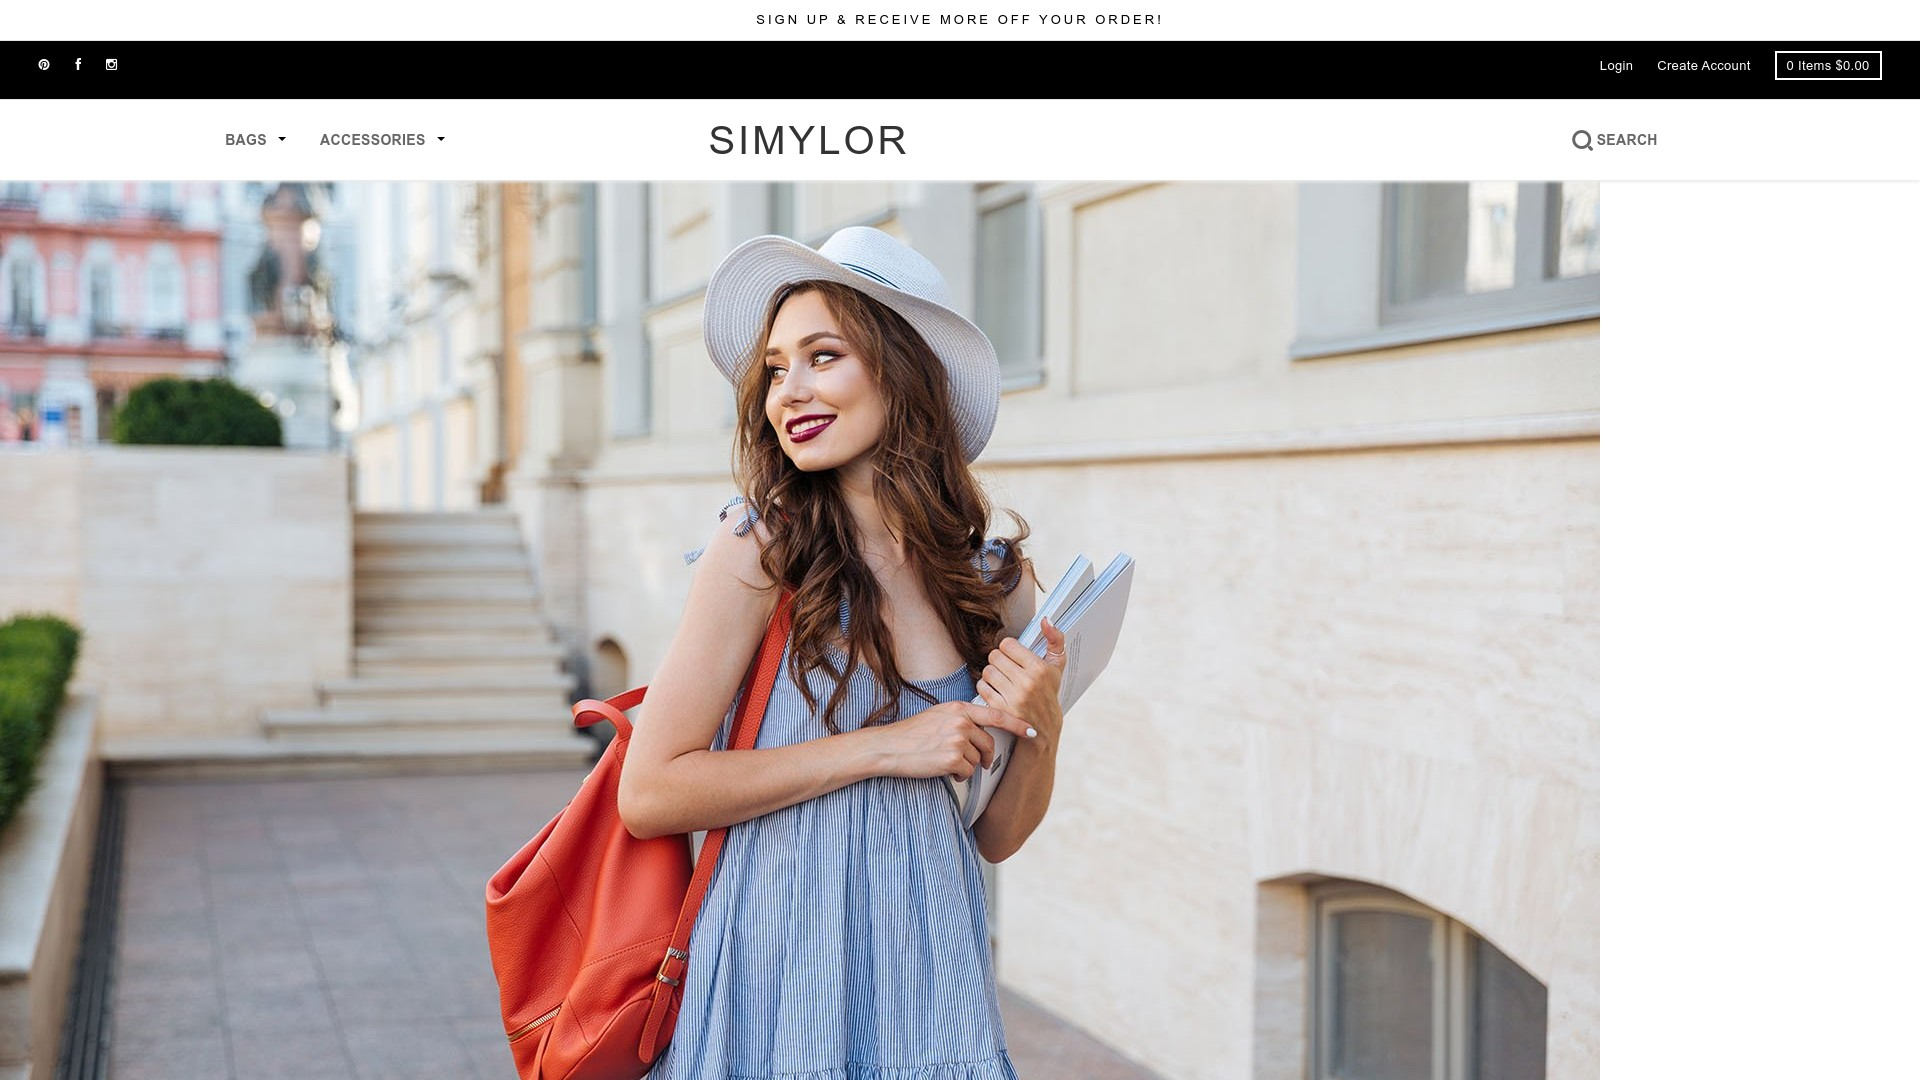 Is Simylor a Scam? Review of the Online Store